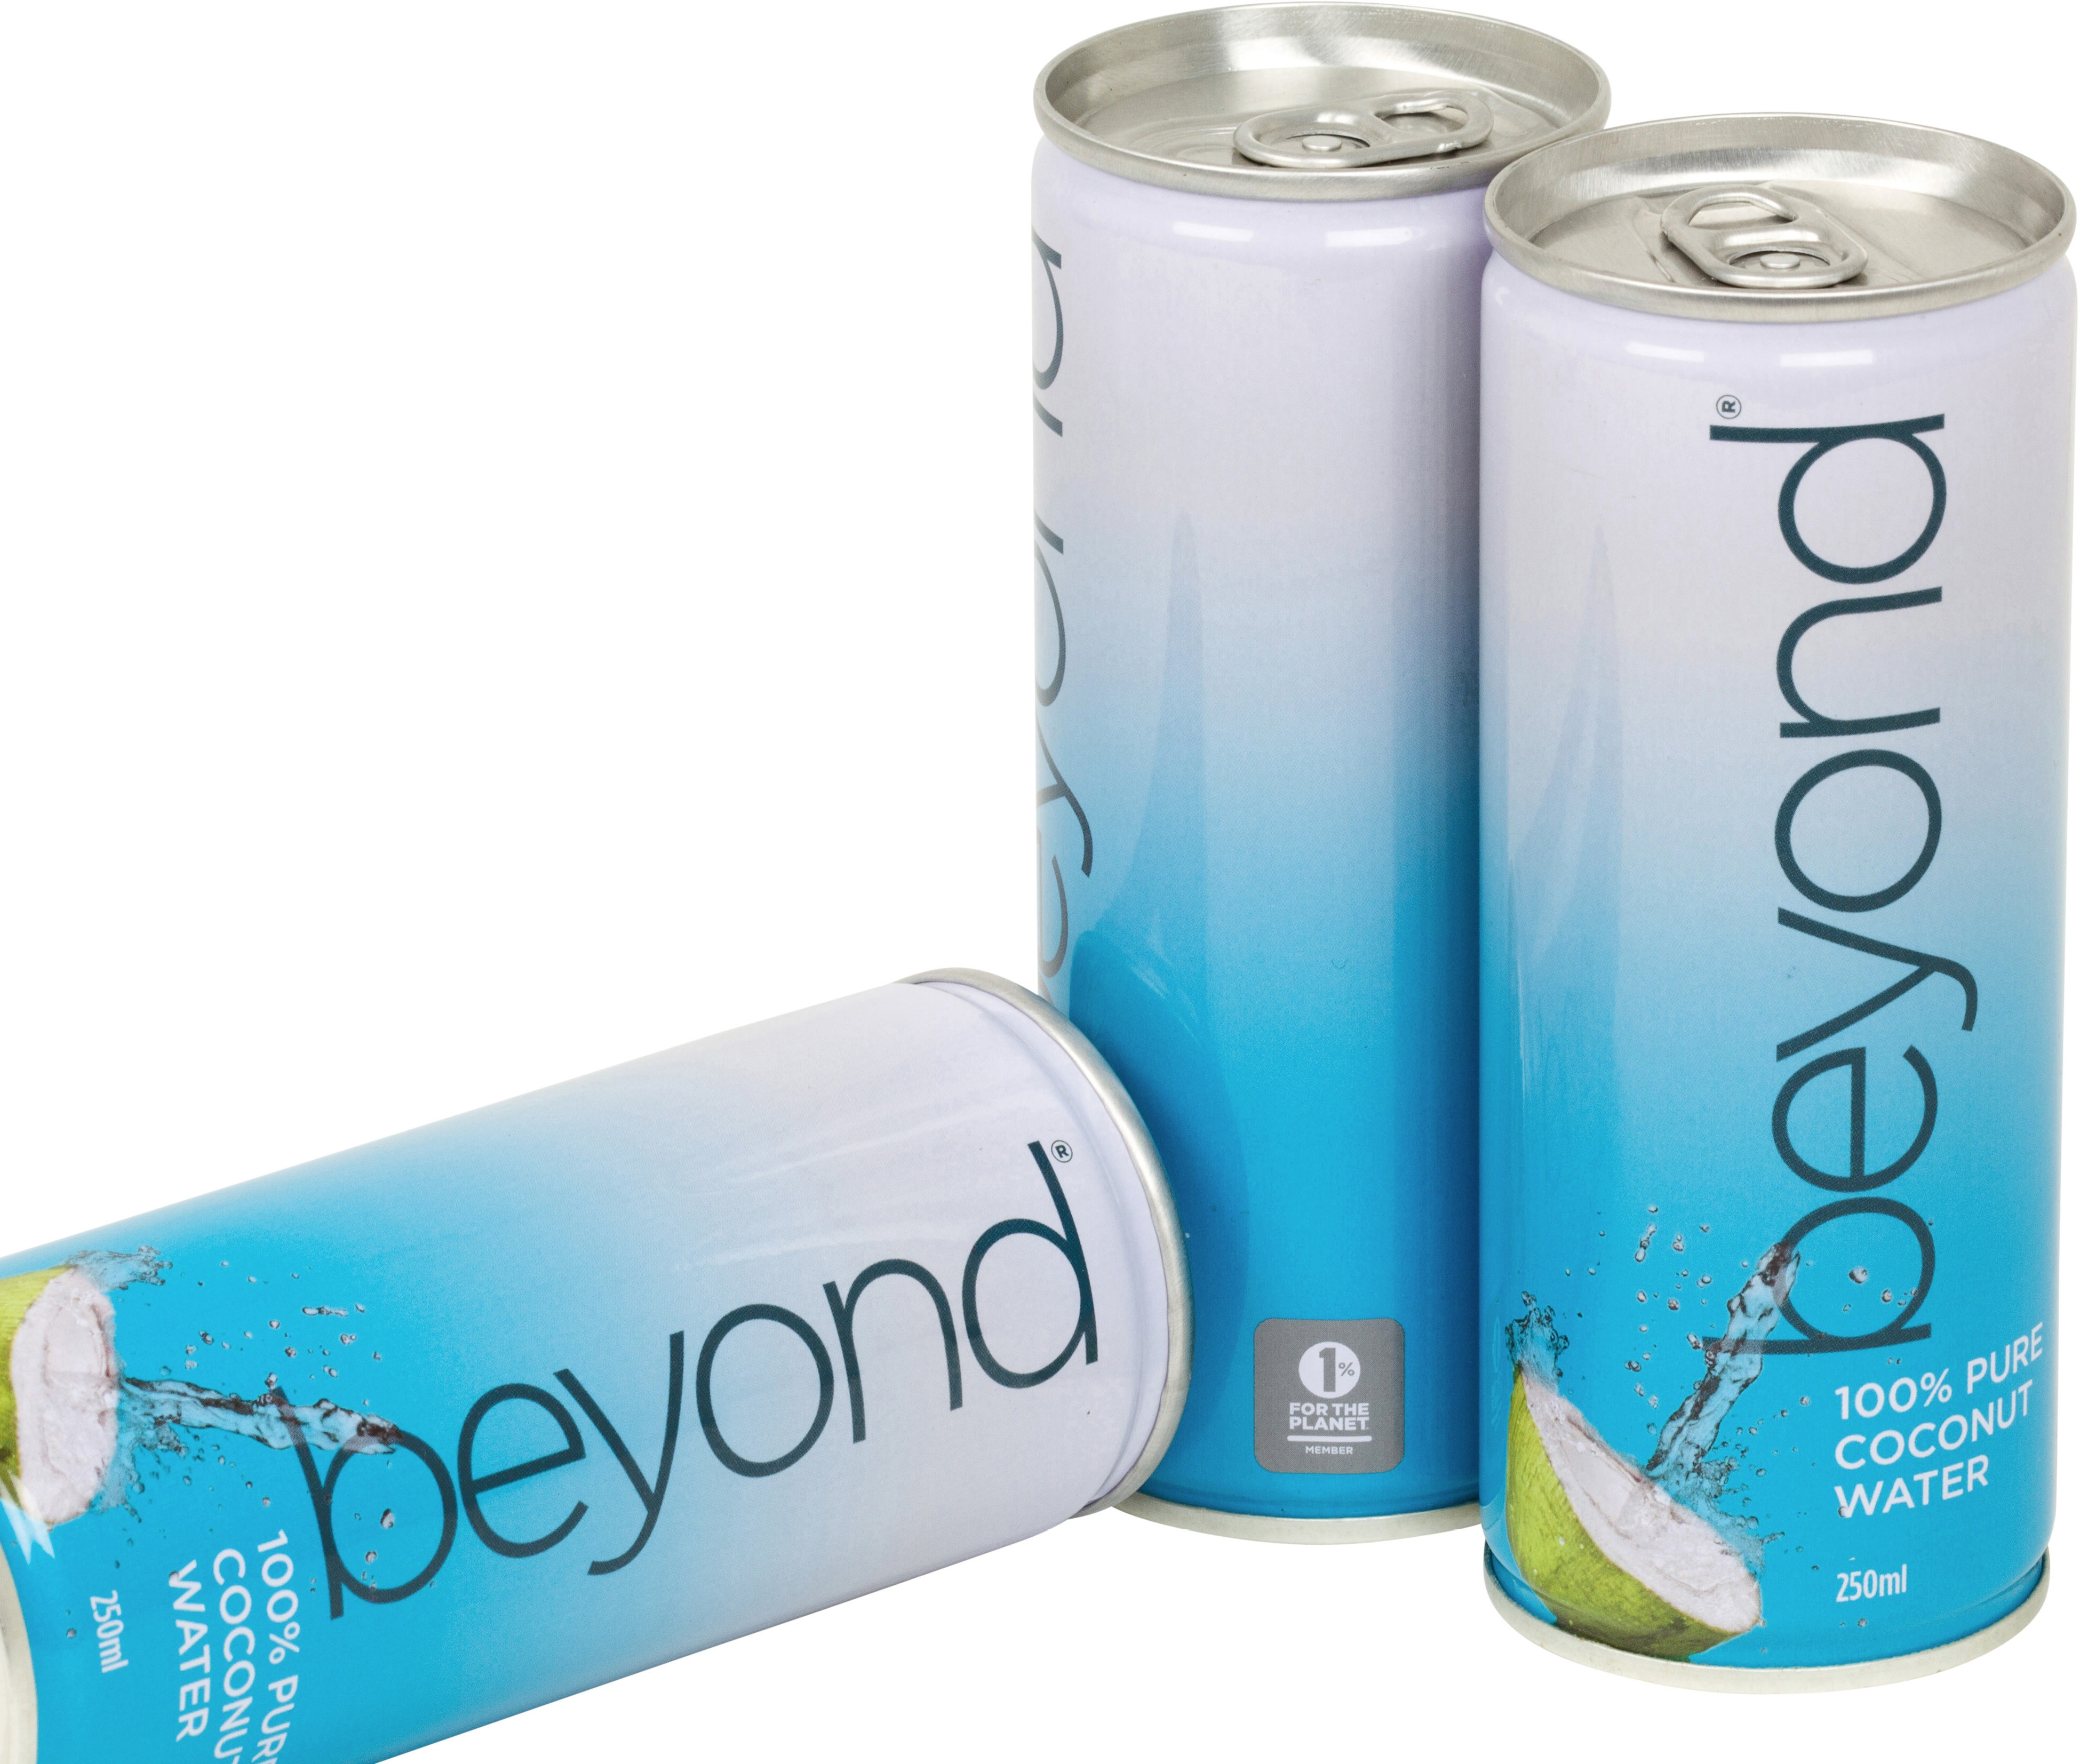 CocoBeyond